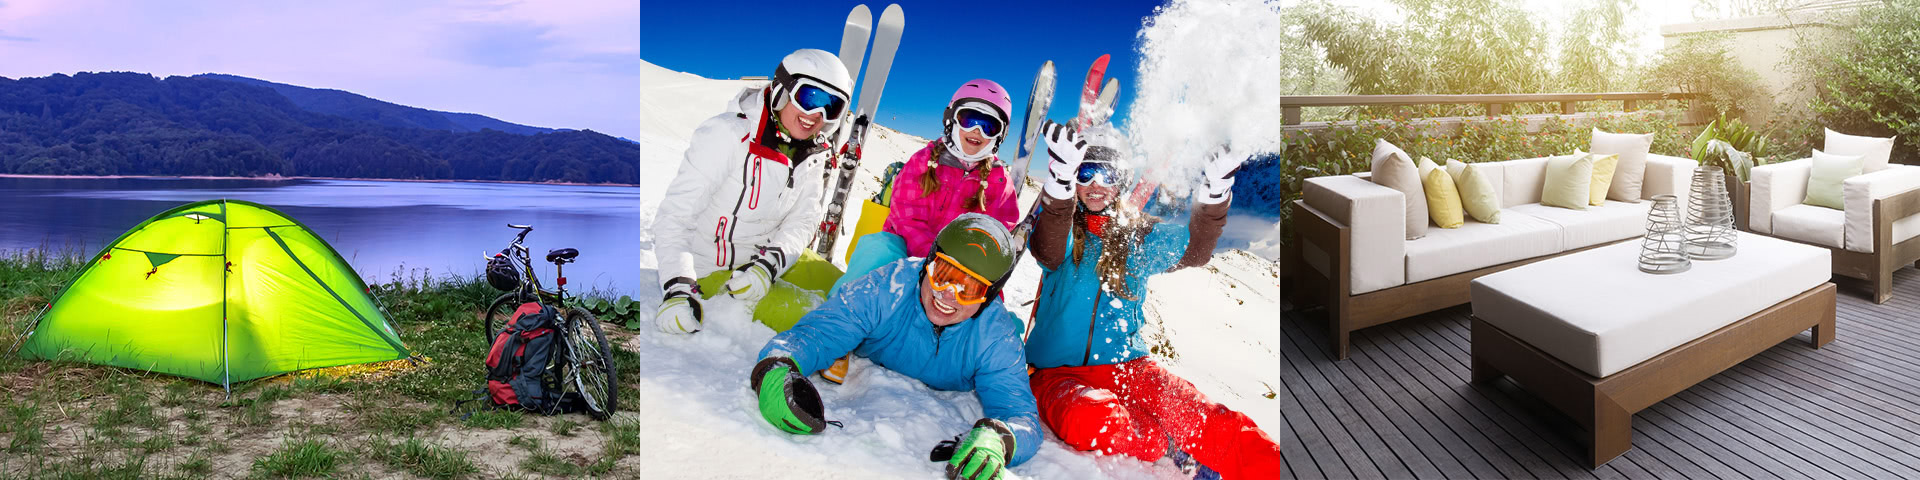 Ski Wholesale & Snowboard Supply Merchandising Group